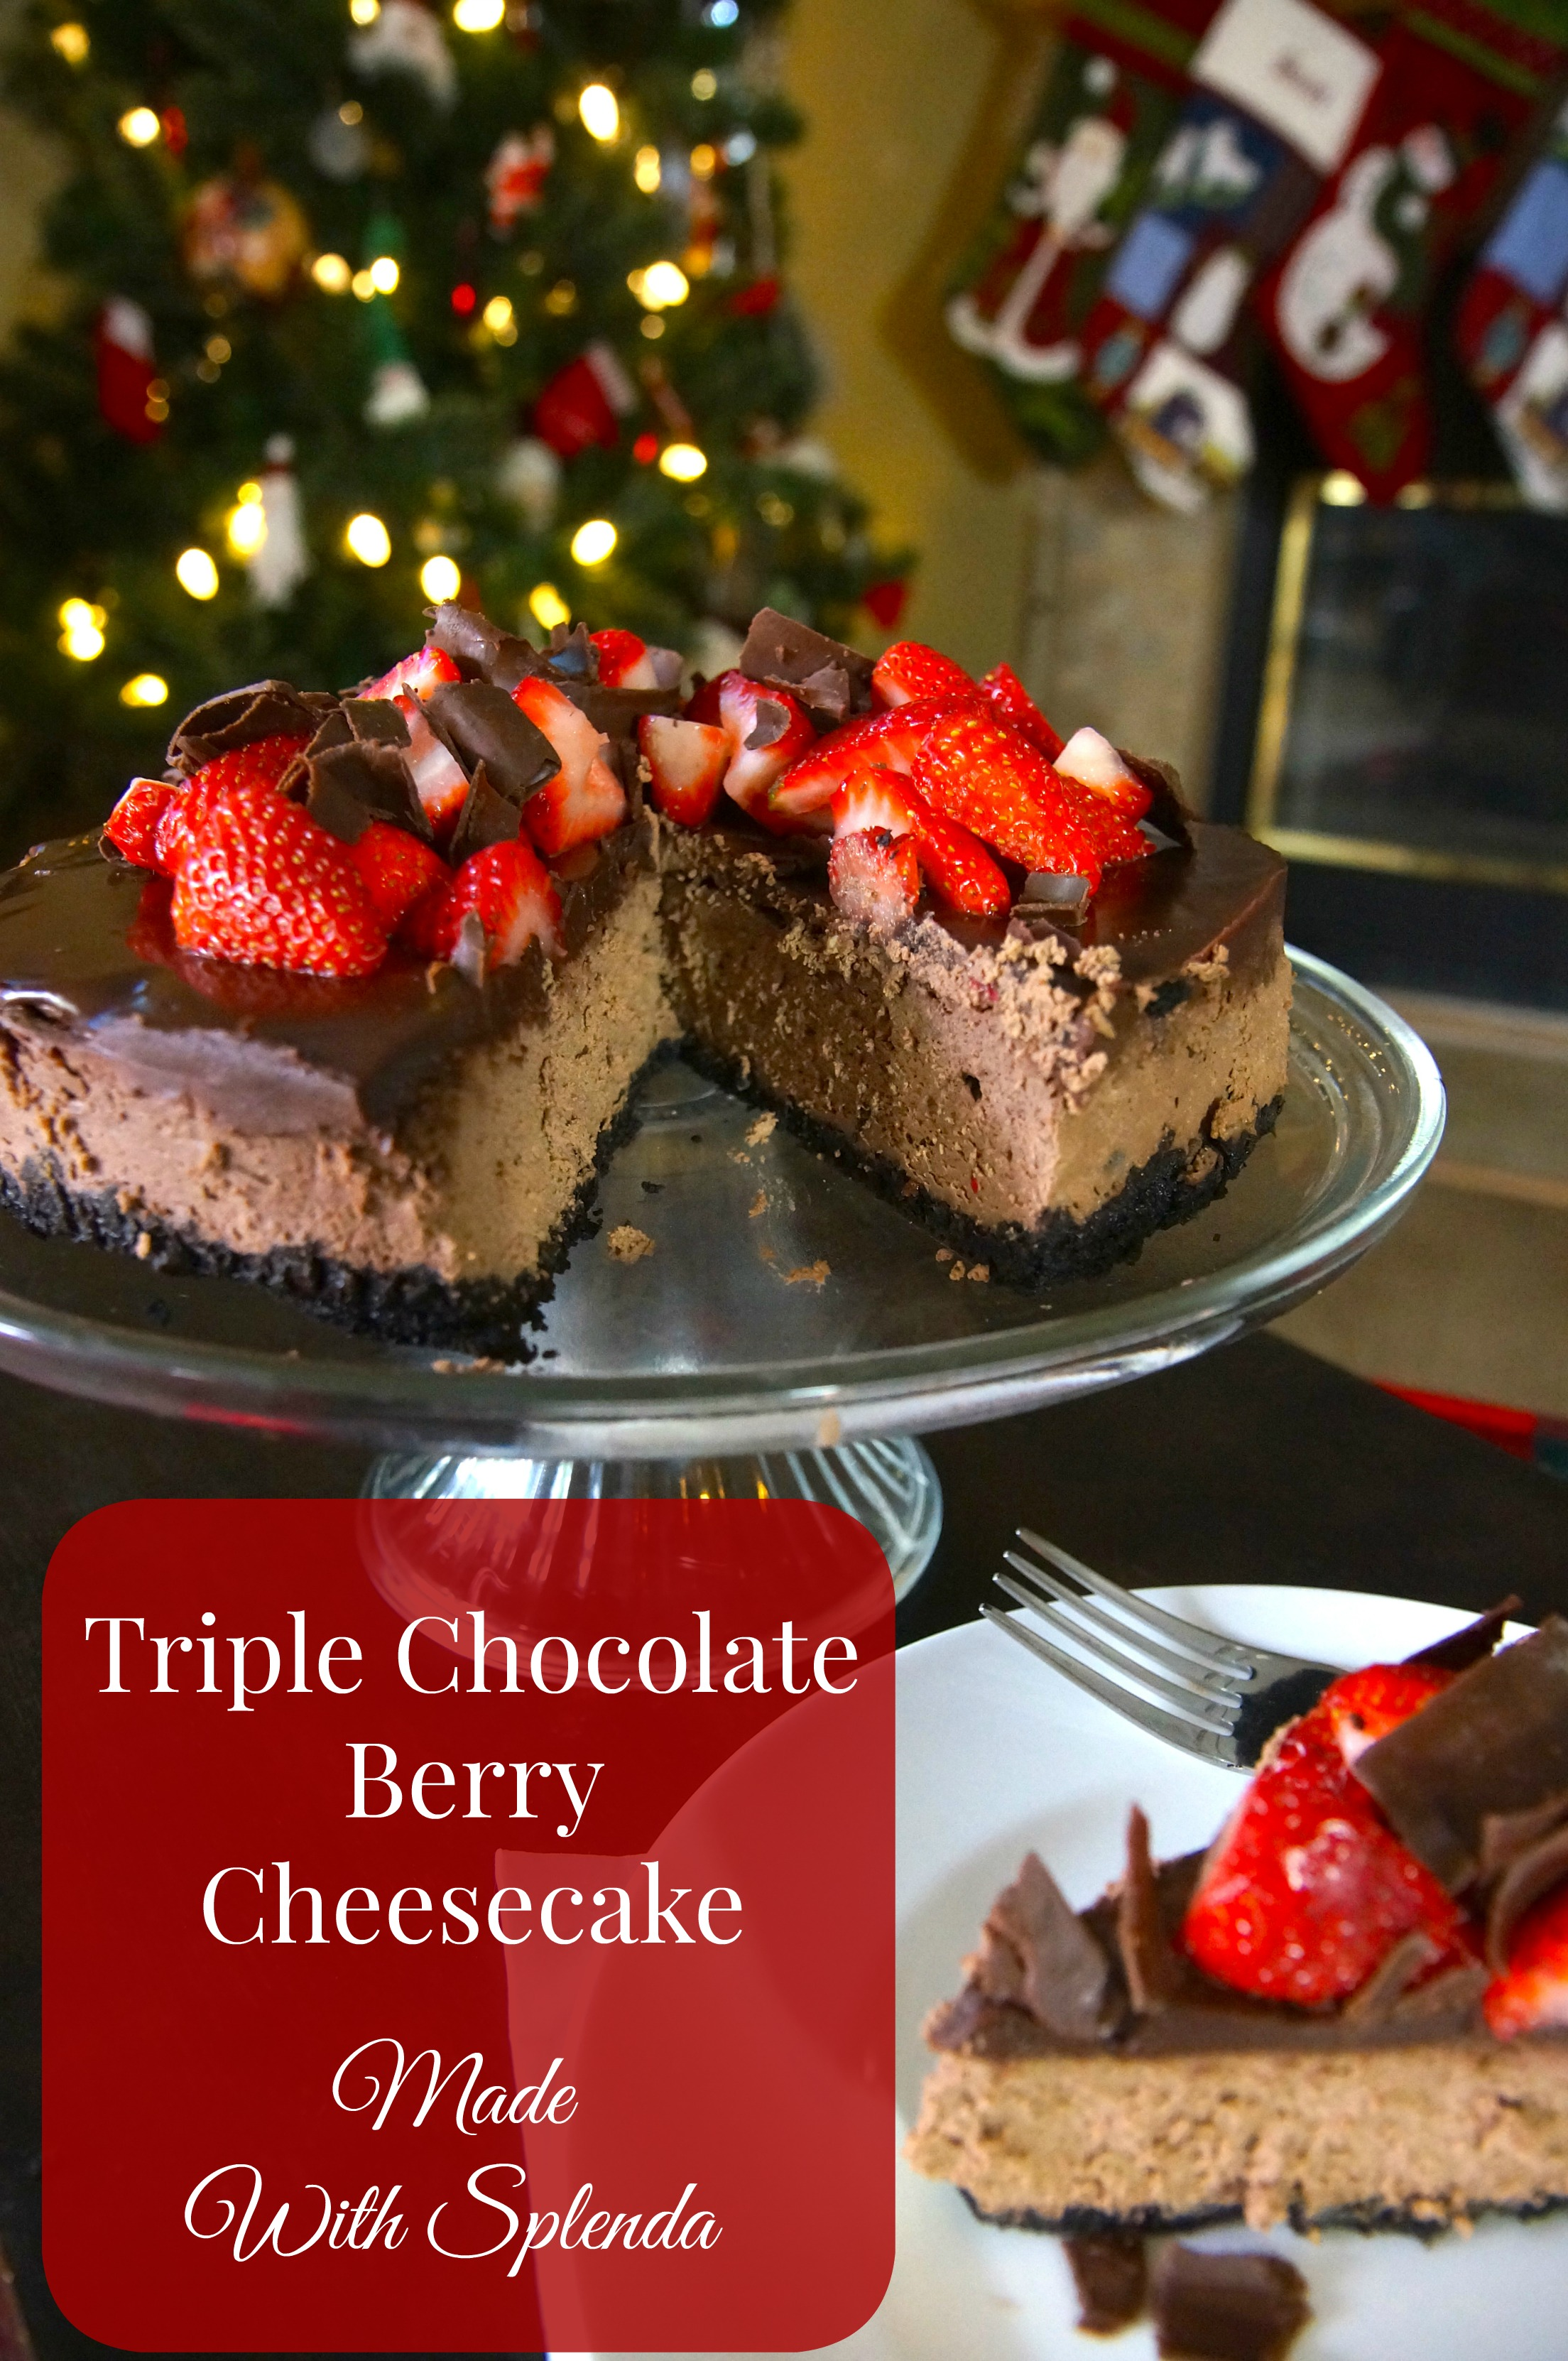 Triple Chocolate Berry Cheesecake made with SPLENDA® No Calorie Sweetener is absolutely creamy and delicious! Oh so Chocolatey!